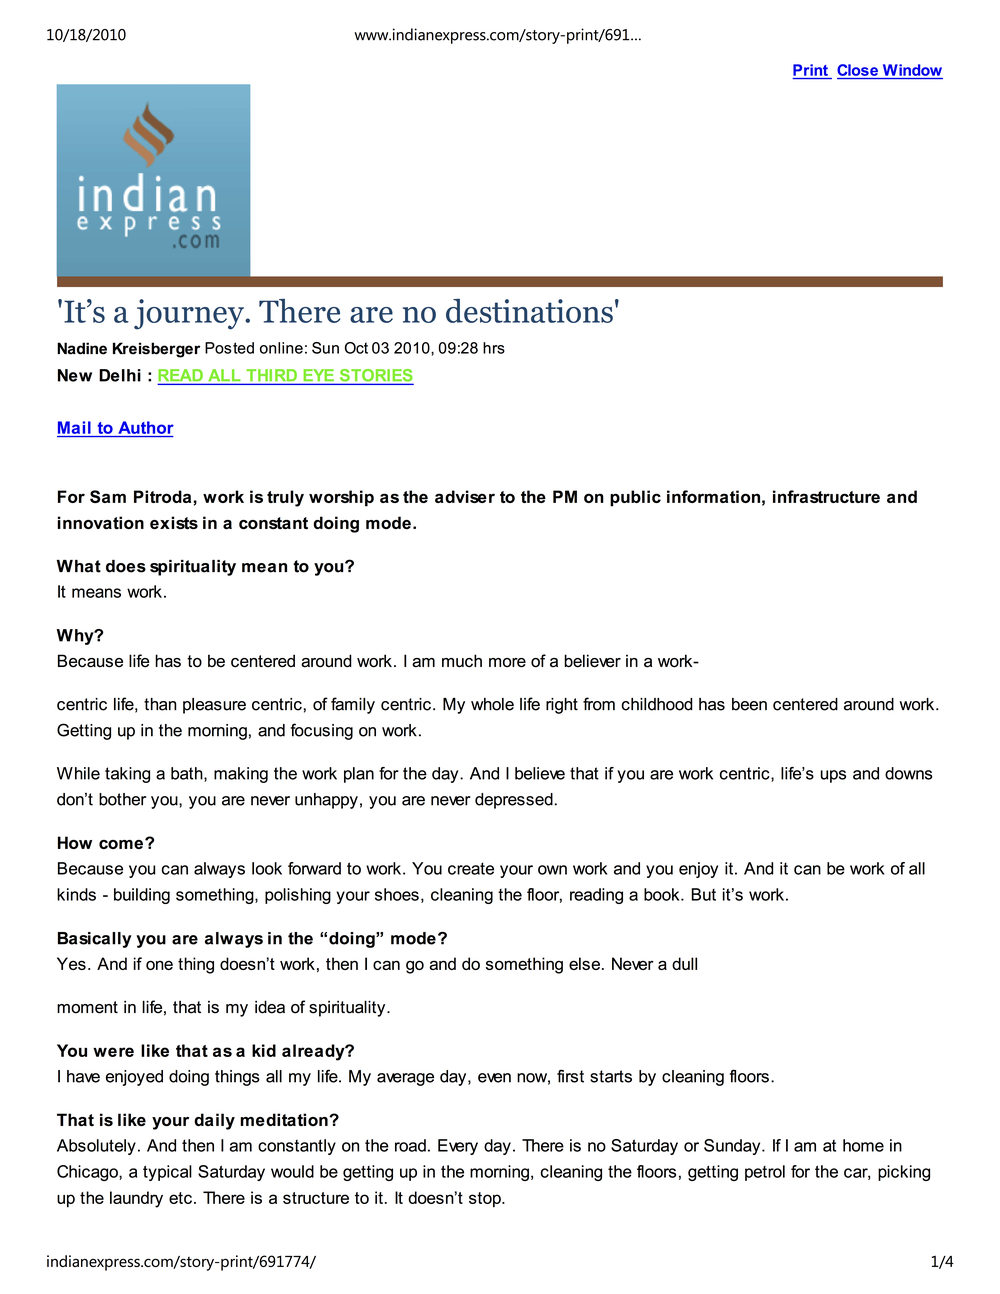 """It's a Journey, There Are No Destinations,"" Indian Express,2010"